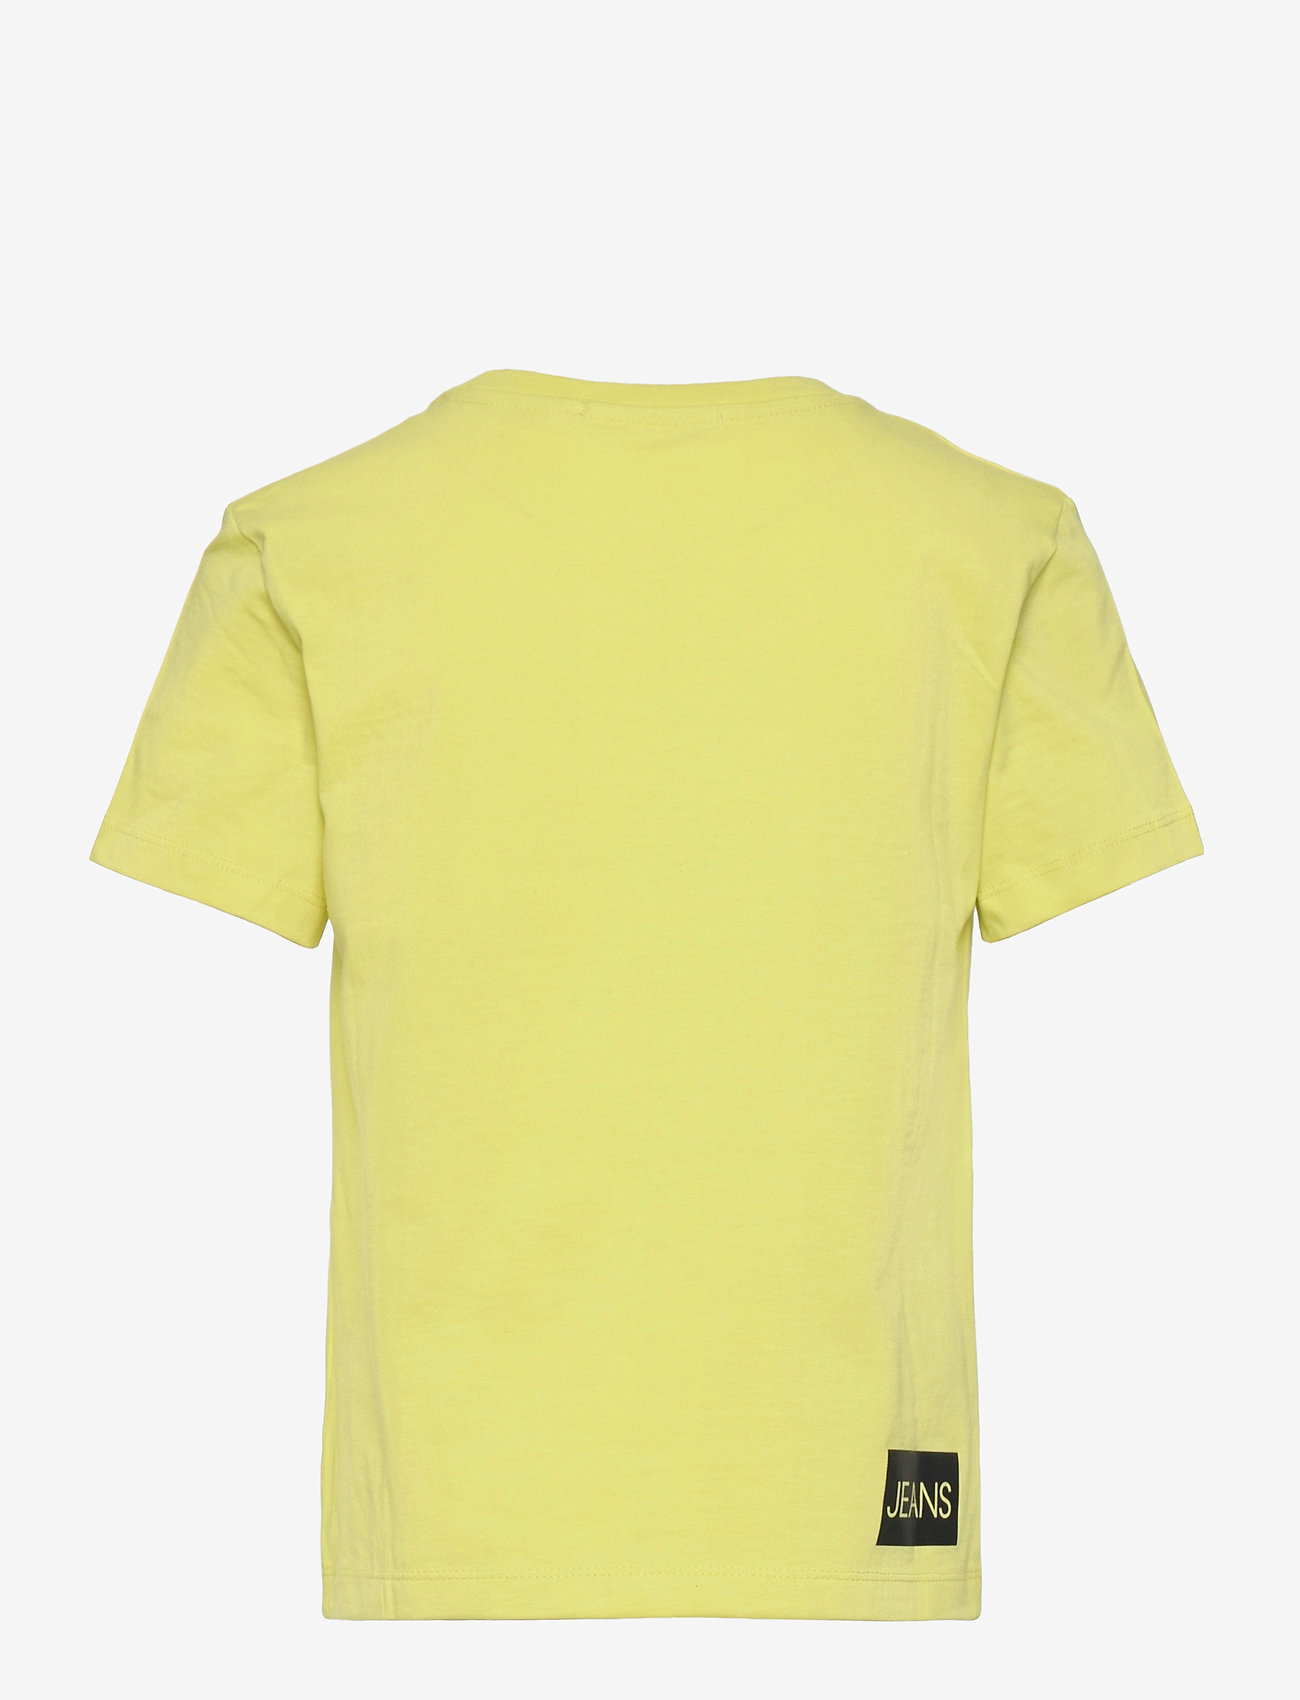 Calvin Klein - INSTITUTIONAL SS T-SHIRT - t-shirts - yellow lime - 1